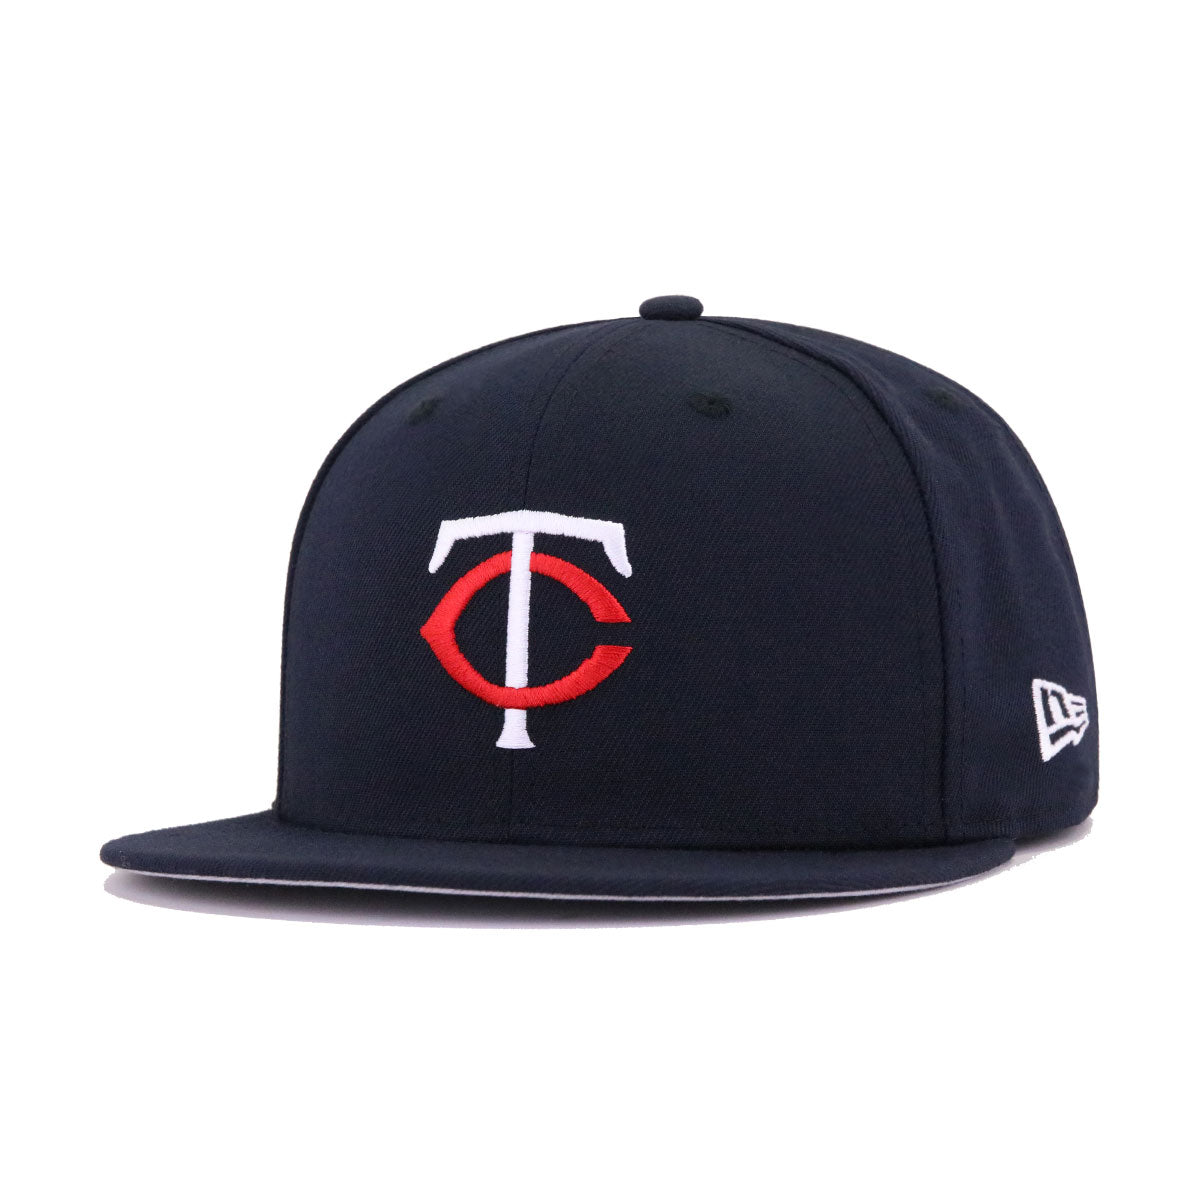 Minnesota Twins Navy 1965 All Star Game New Era 59Fifty Fitted